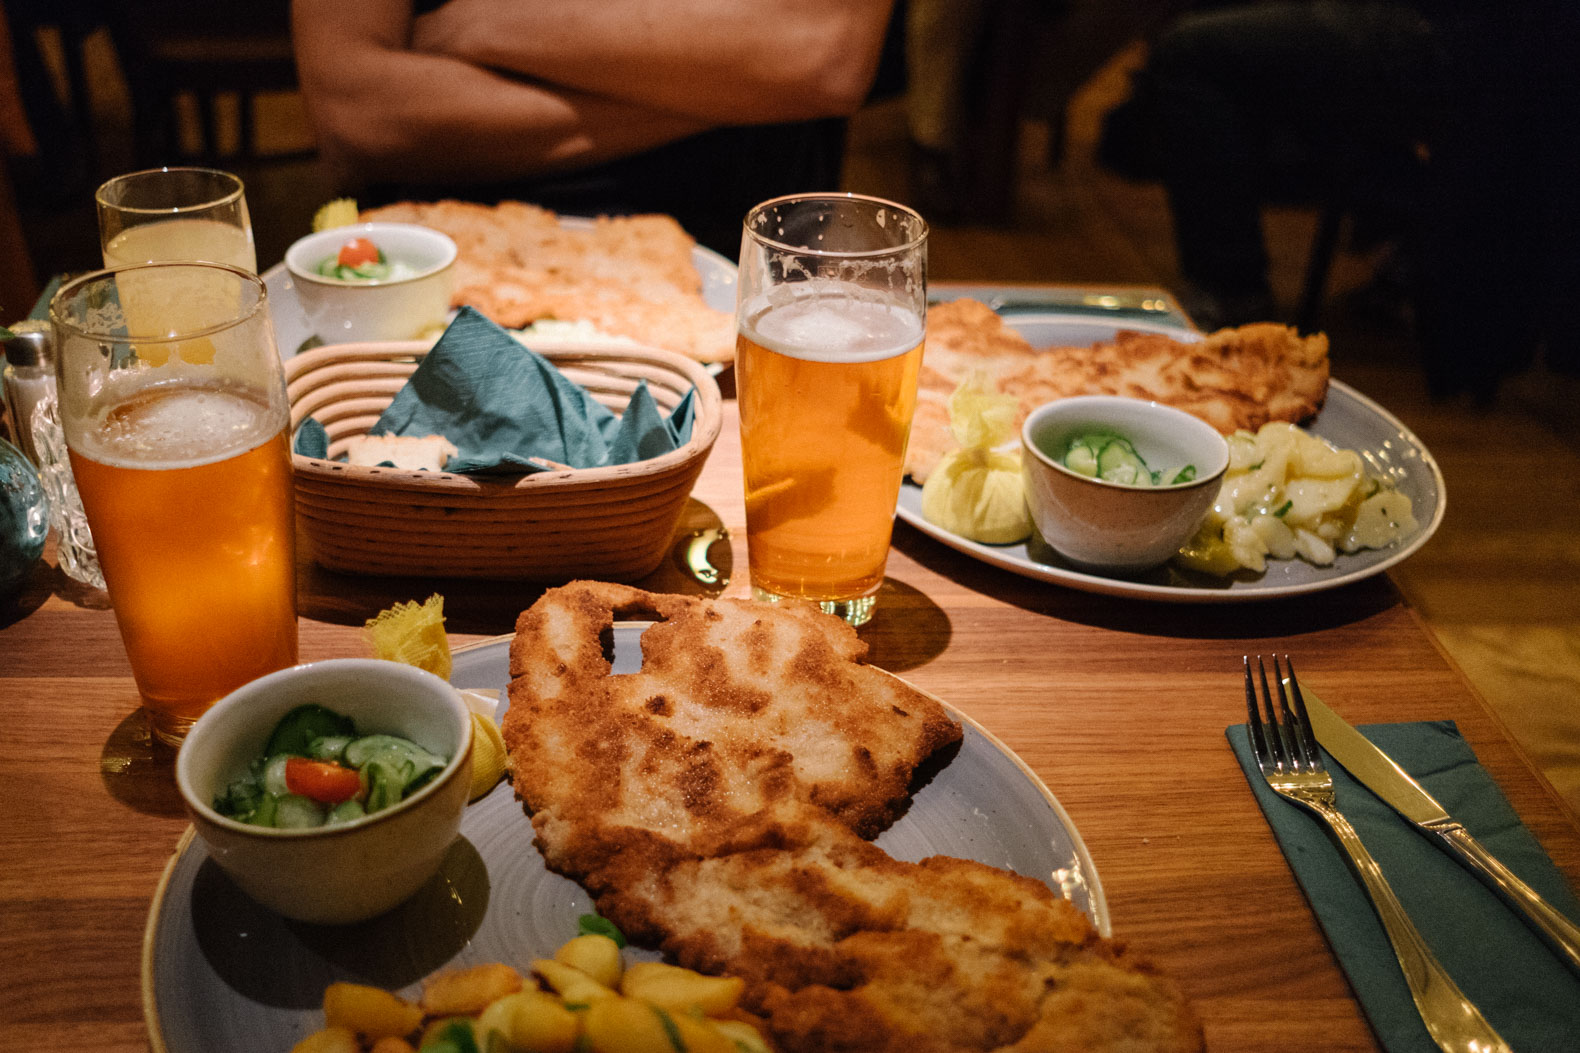 Schnitzel Restaurant Locals Favorite Places To Eat German Food In Berlin Not A Nomad